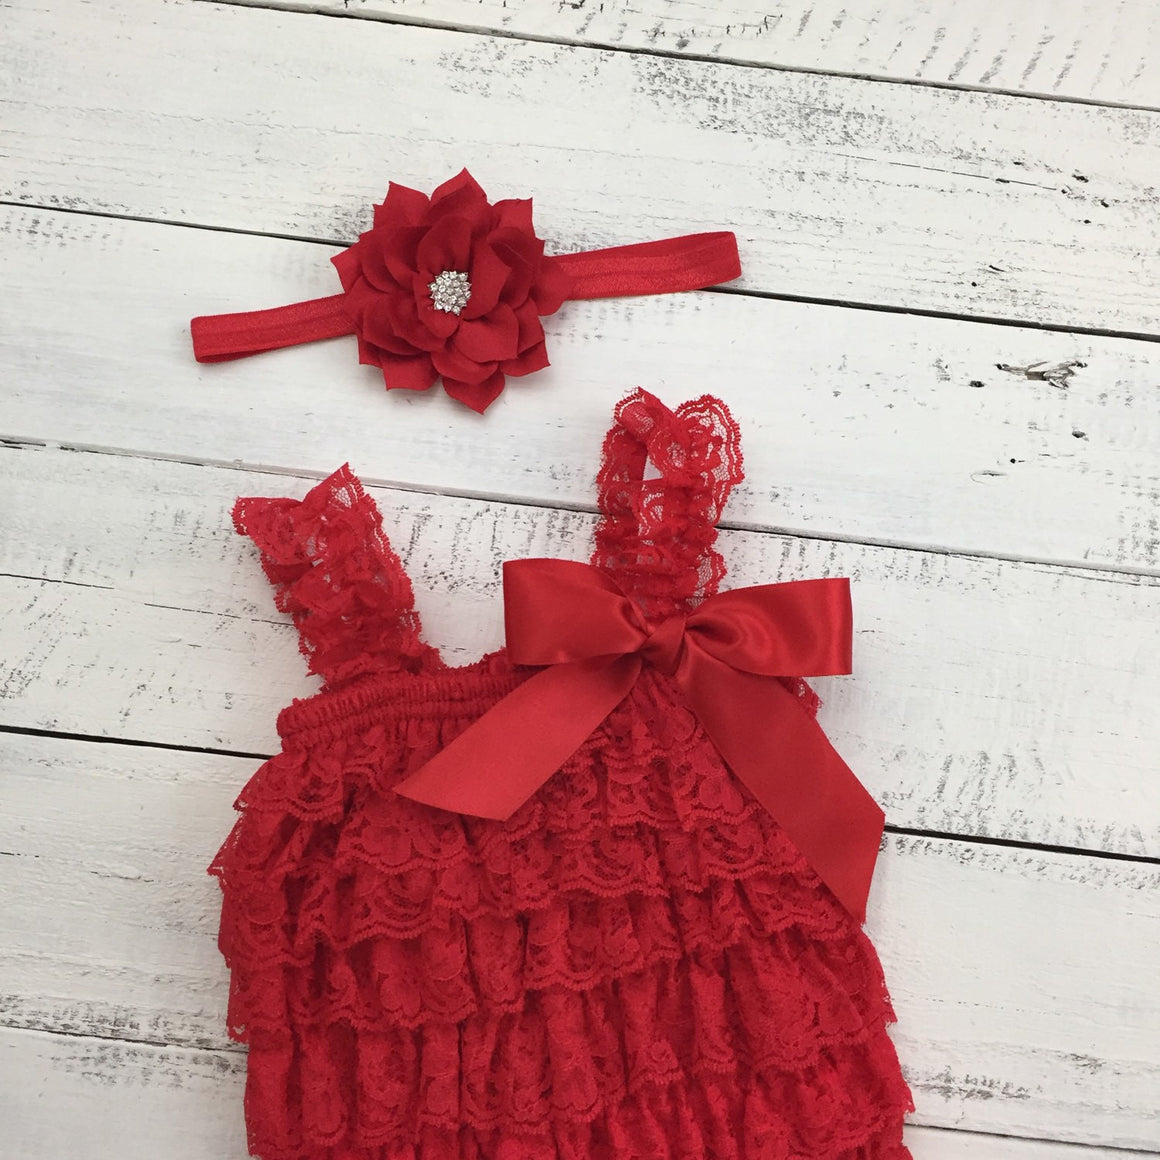 Lace Romper - Christmas Red Lace Petti Romper and matching poinsettia headband - HoneyLoveBoutique